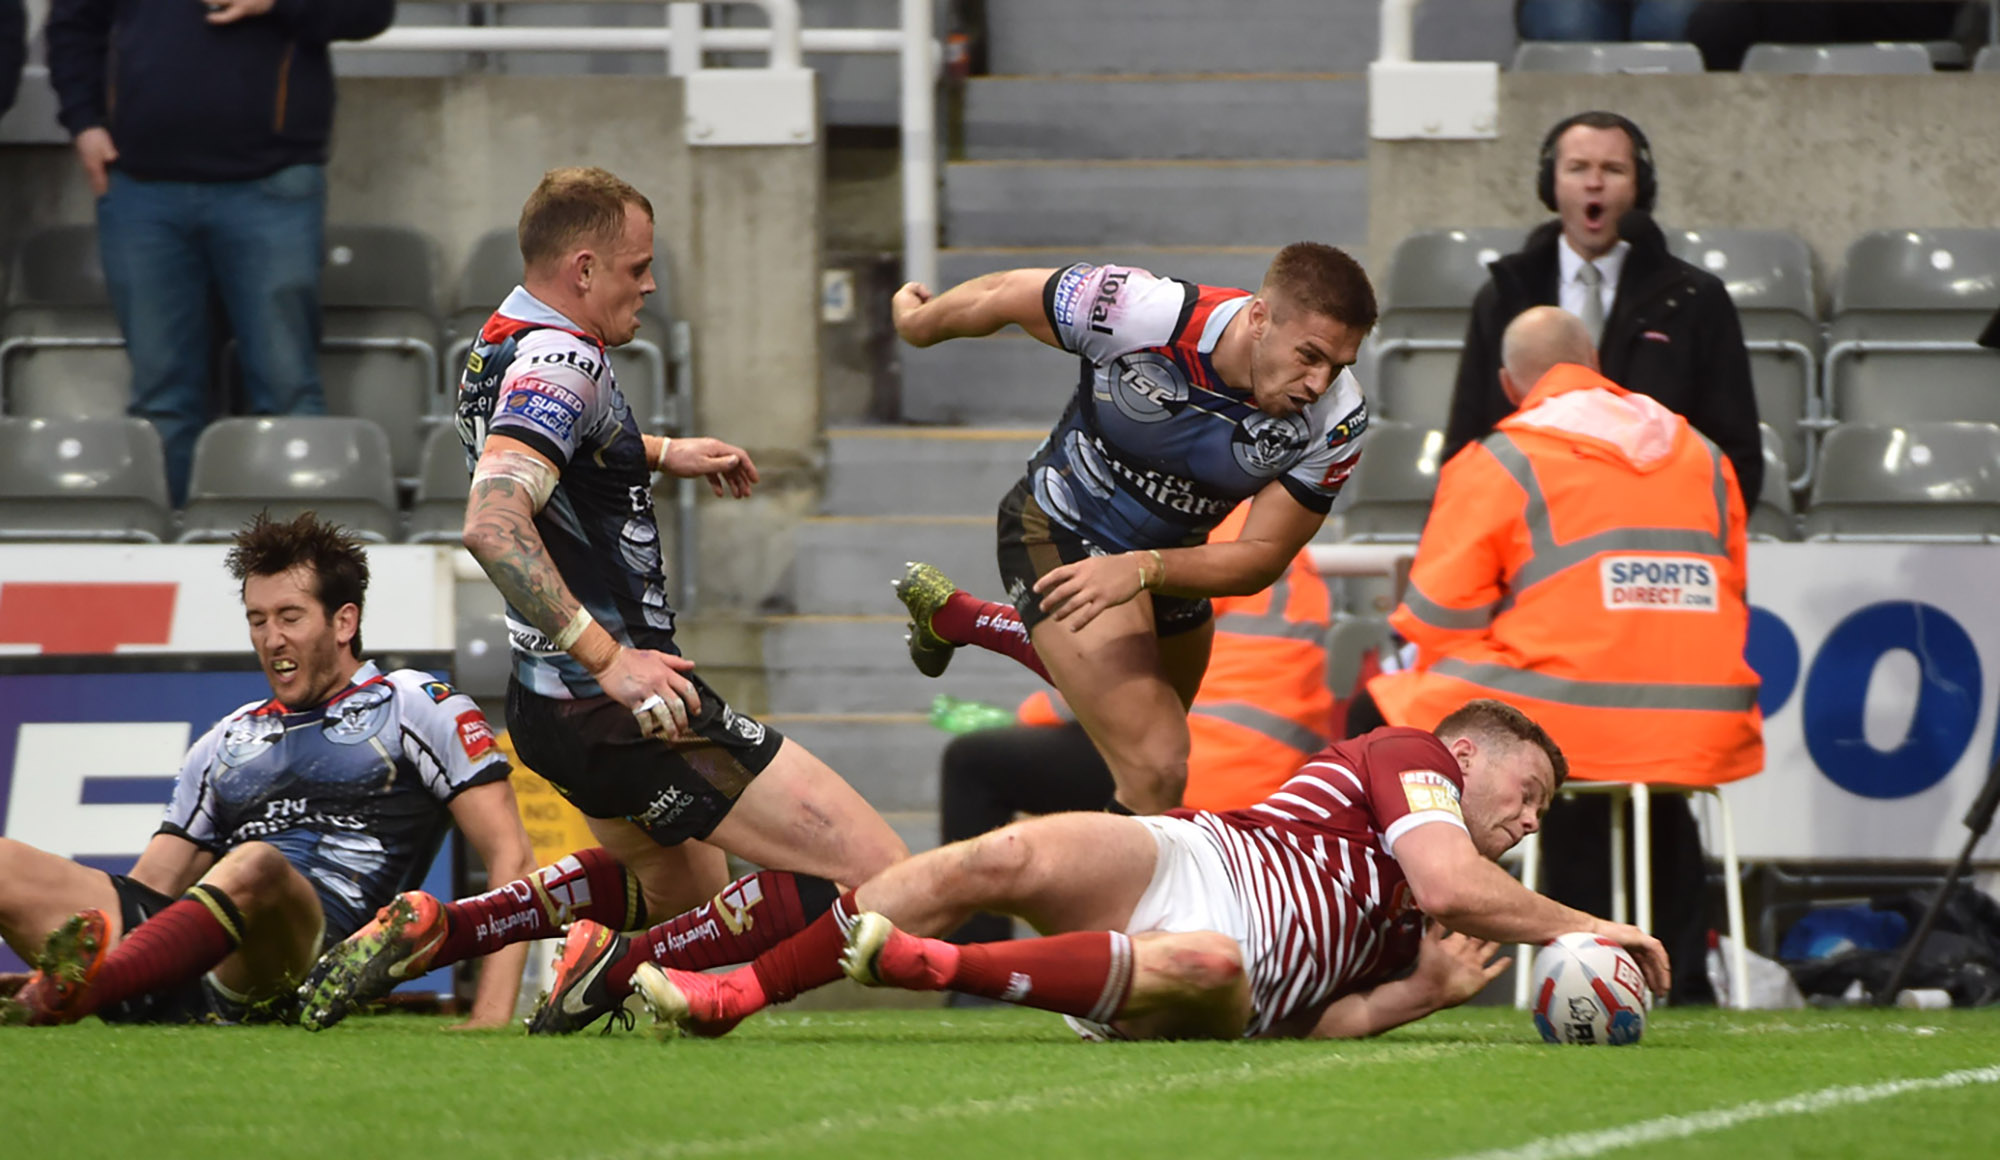 Wigan 24 Warrington 24